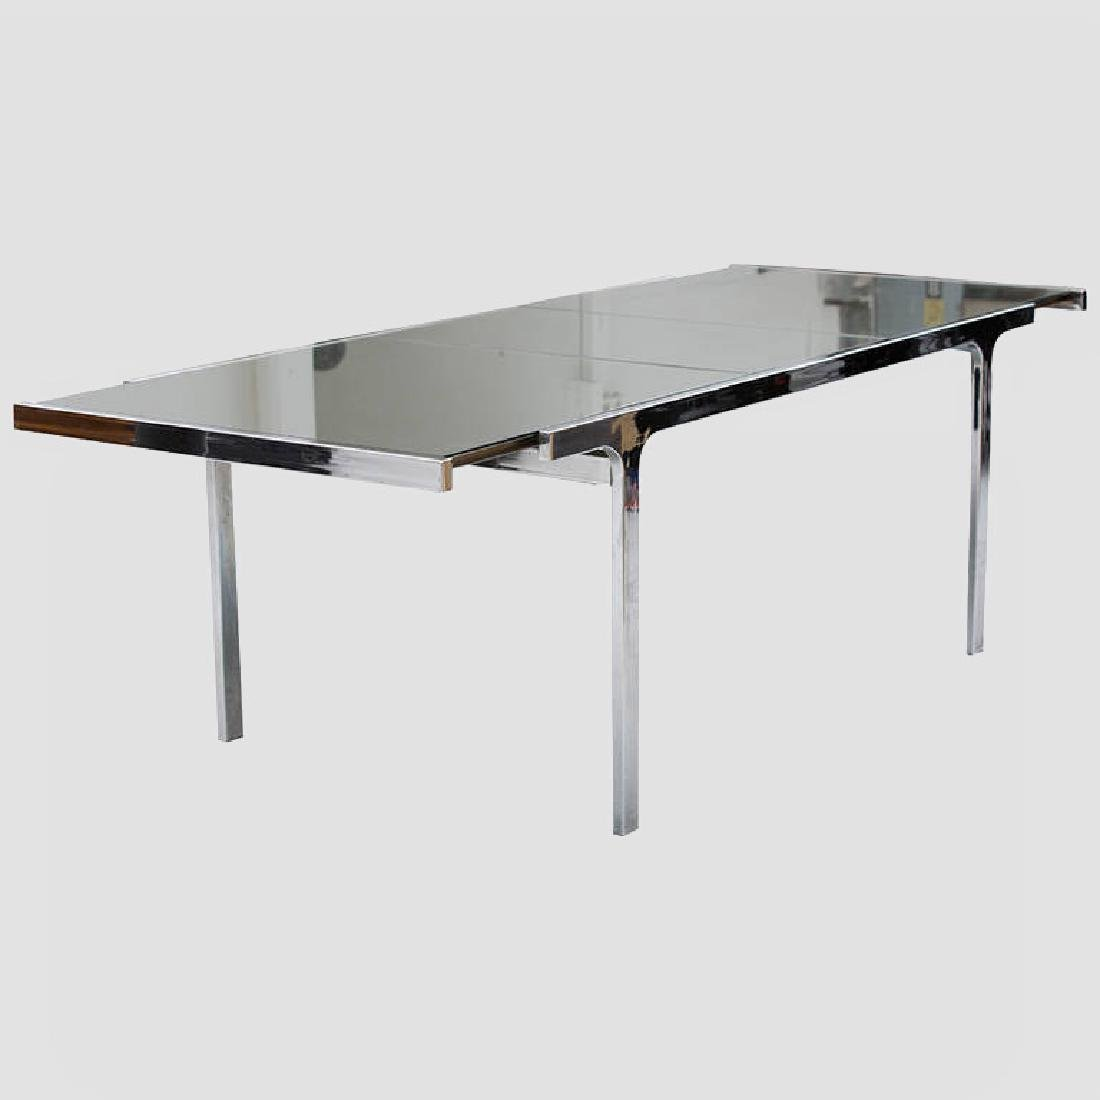 Pierre Cardin Mirror and Steel Table